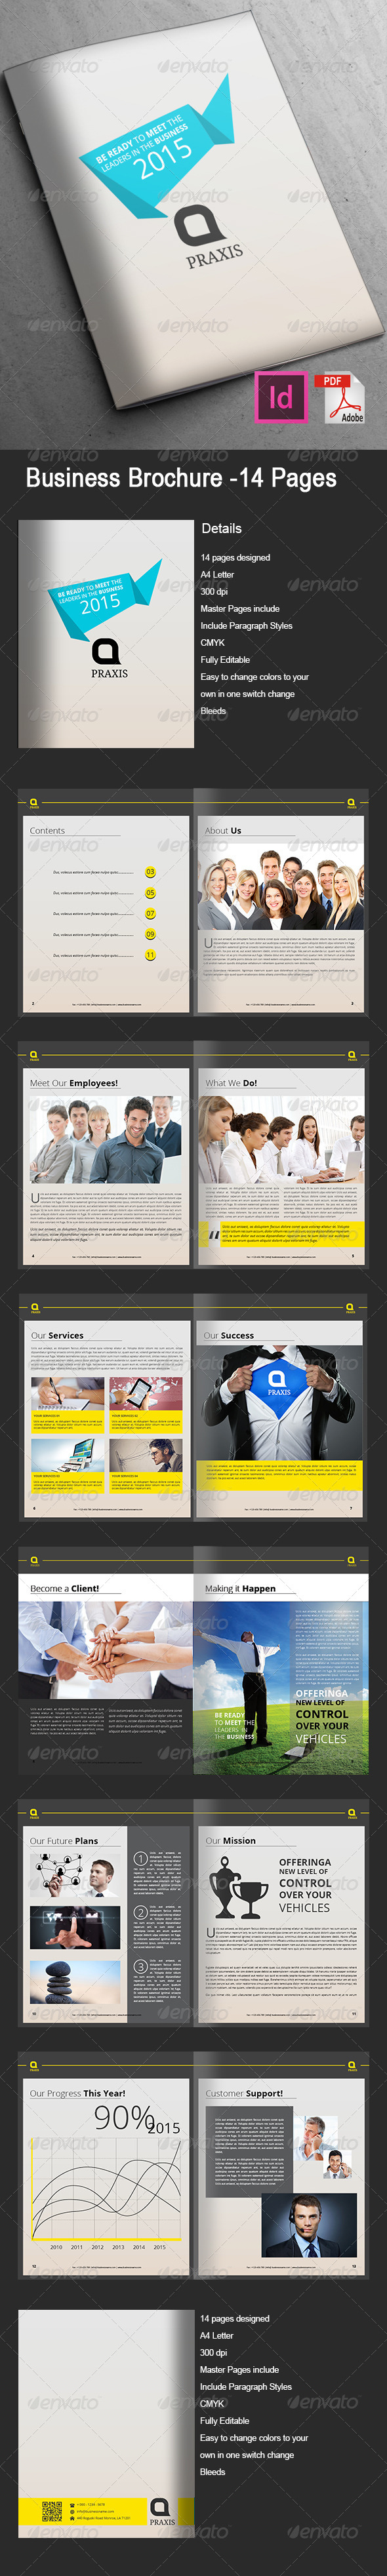 GraphicRiver Business Brochure 14 Pages 8097689